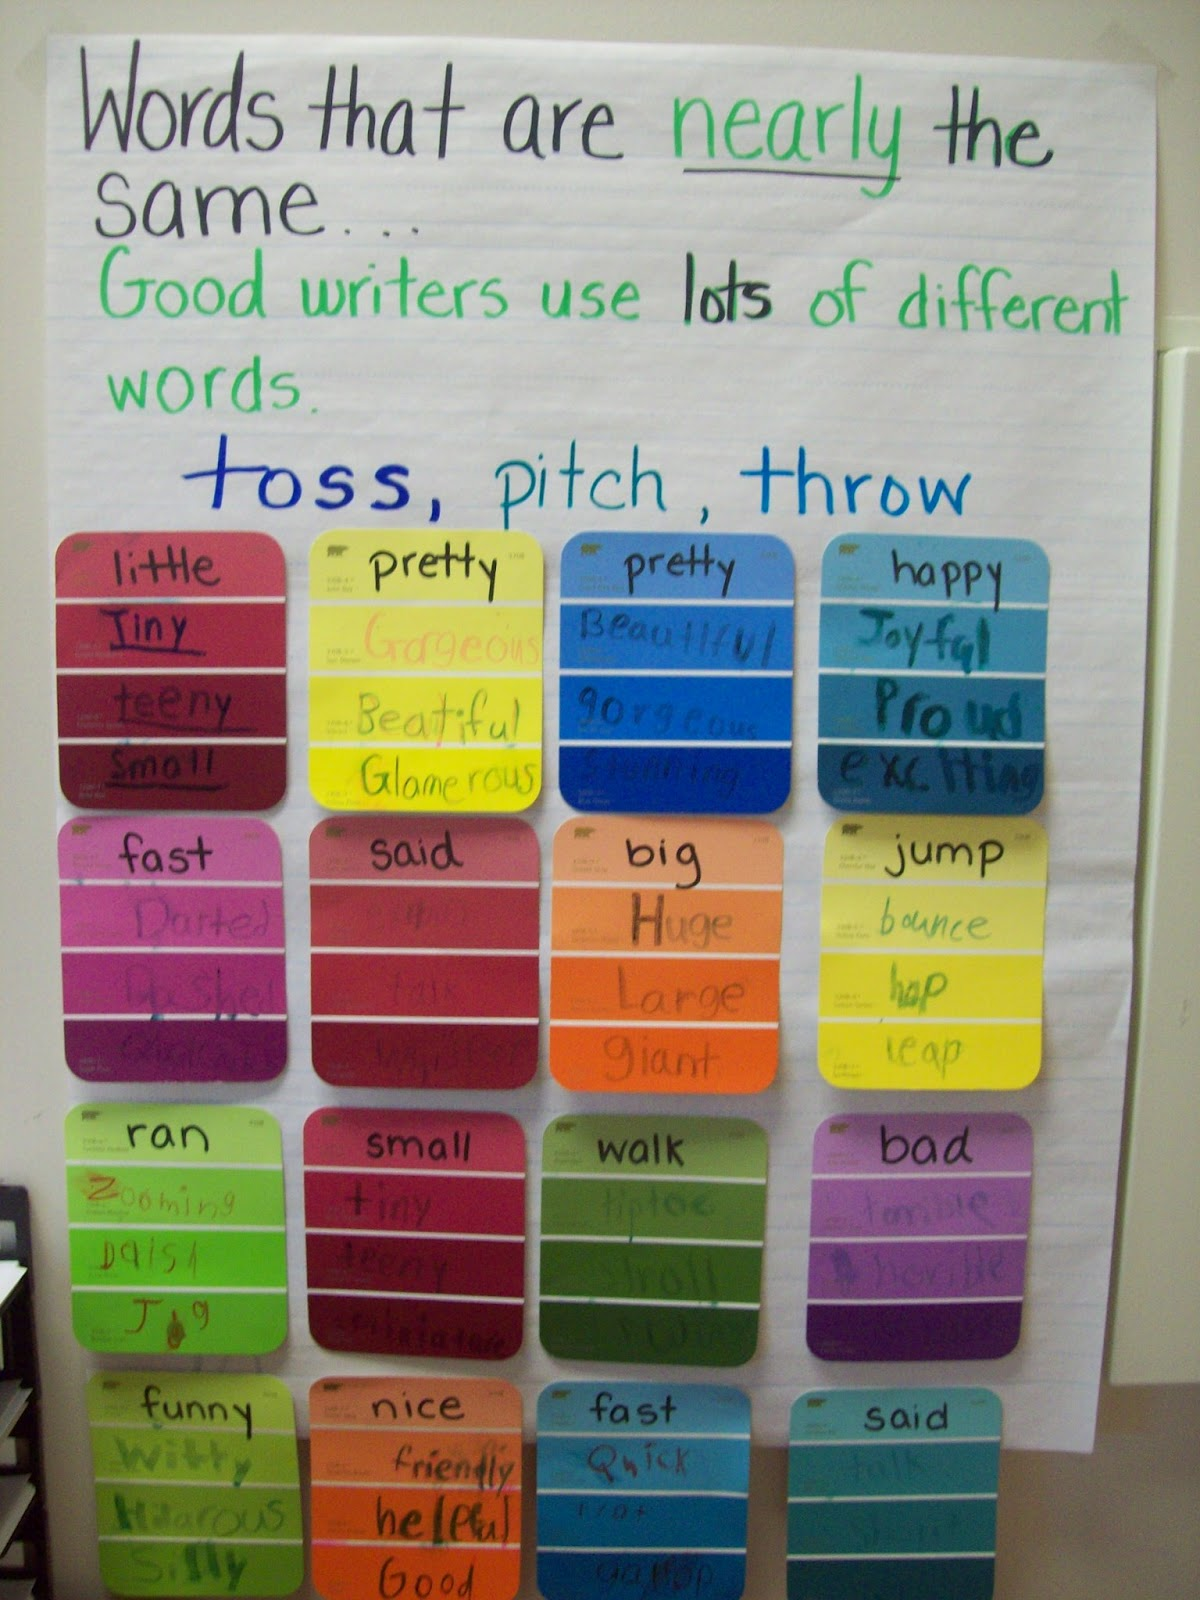 hight resolution of shades of meaning anchor chart - Zerse